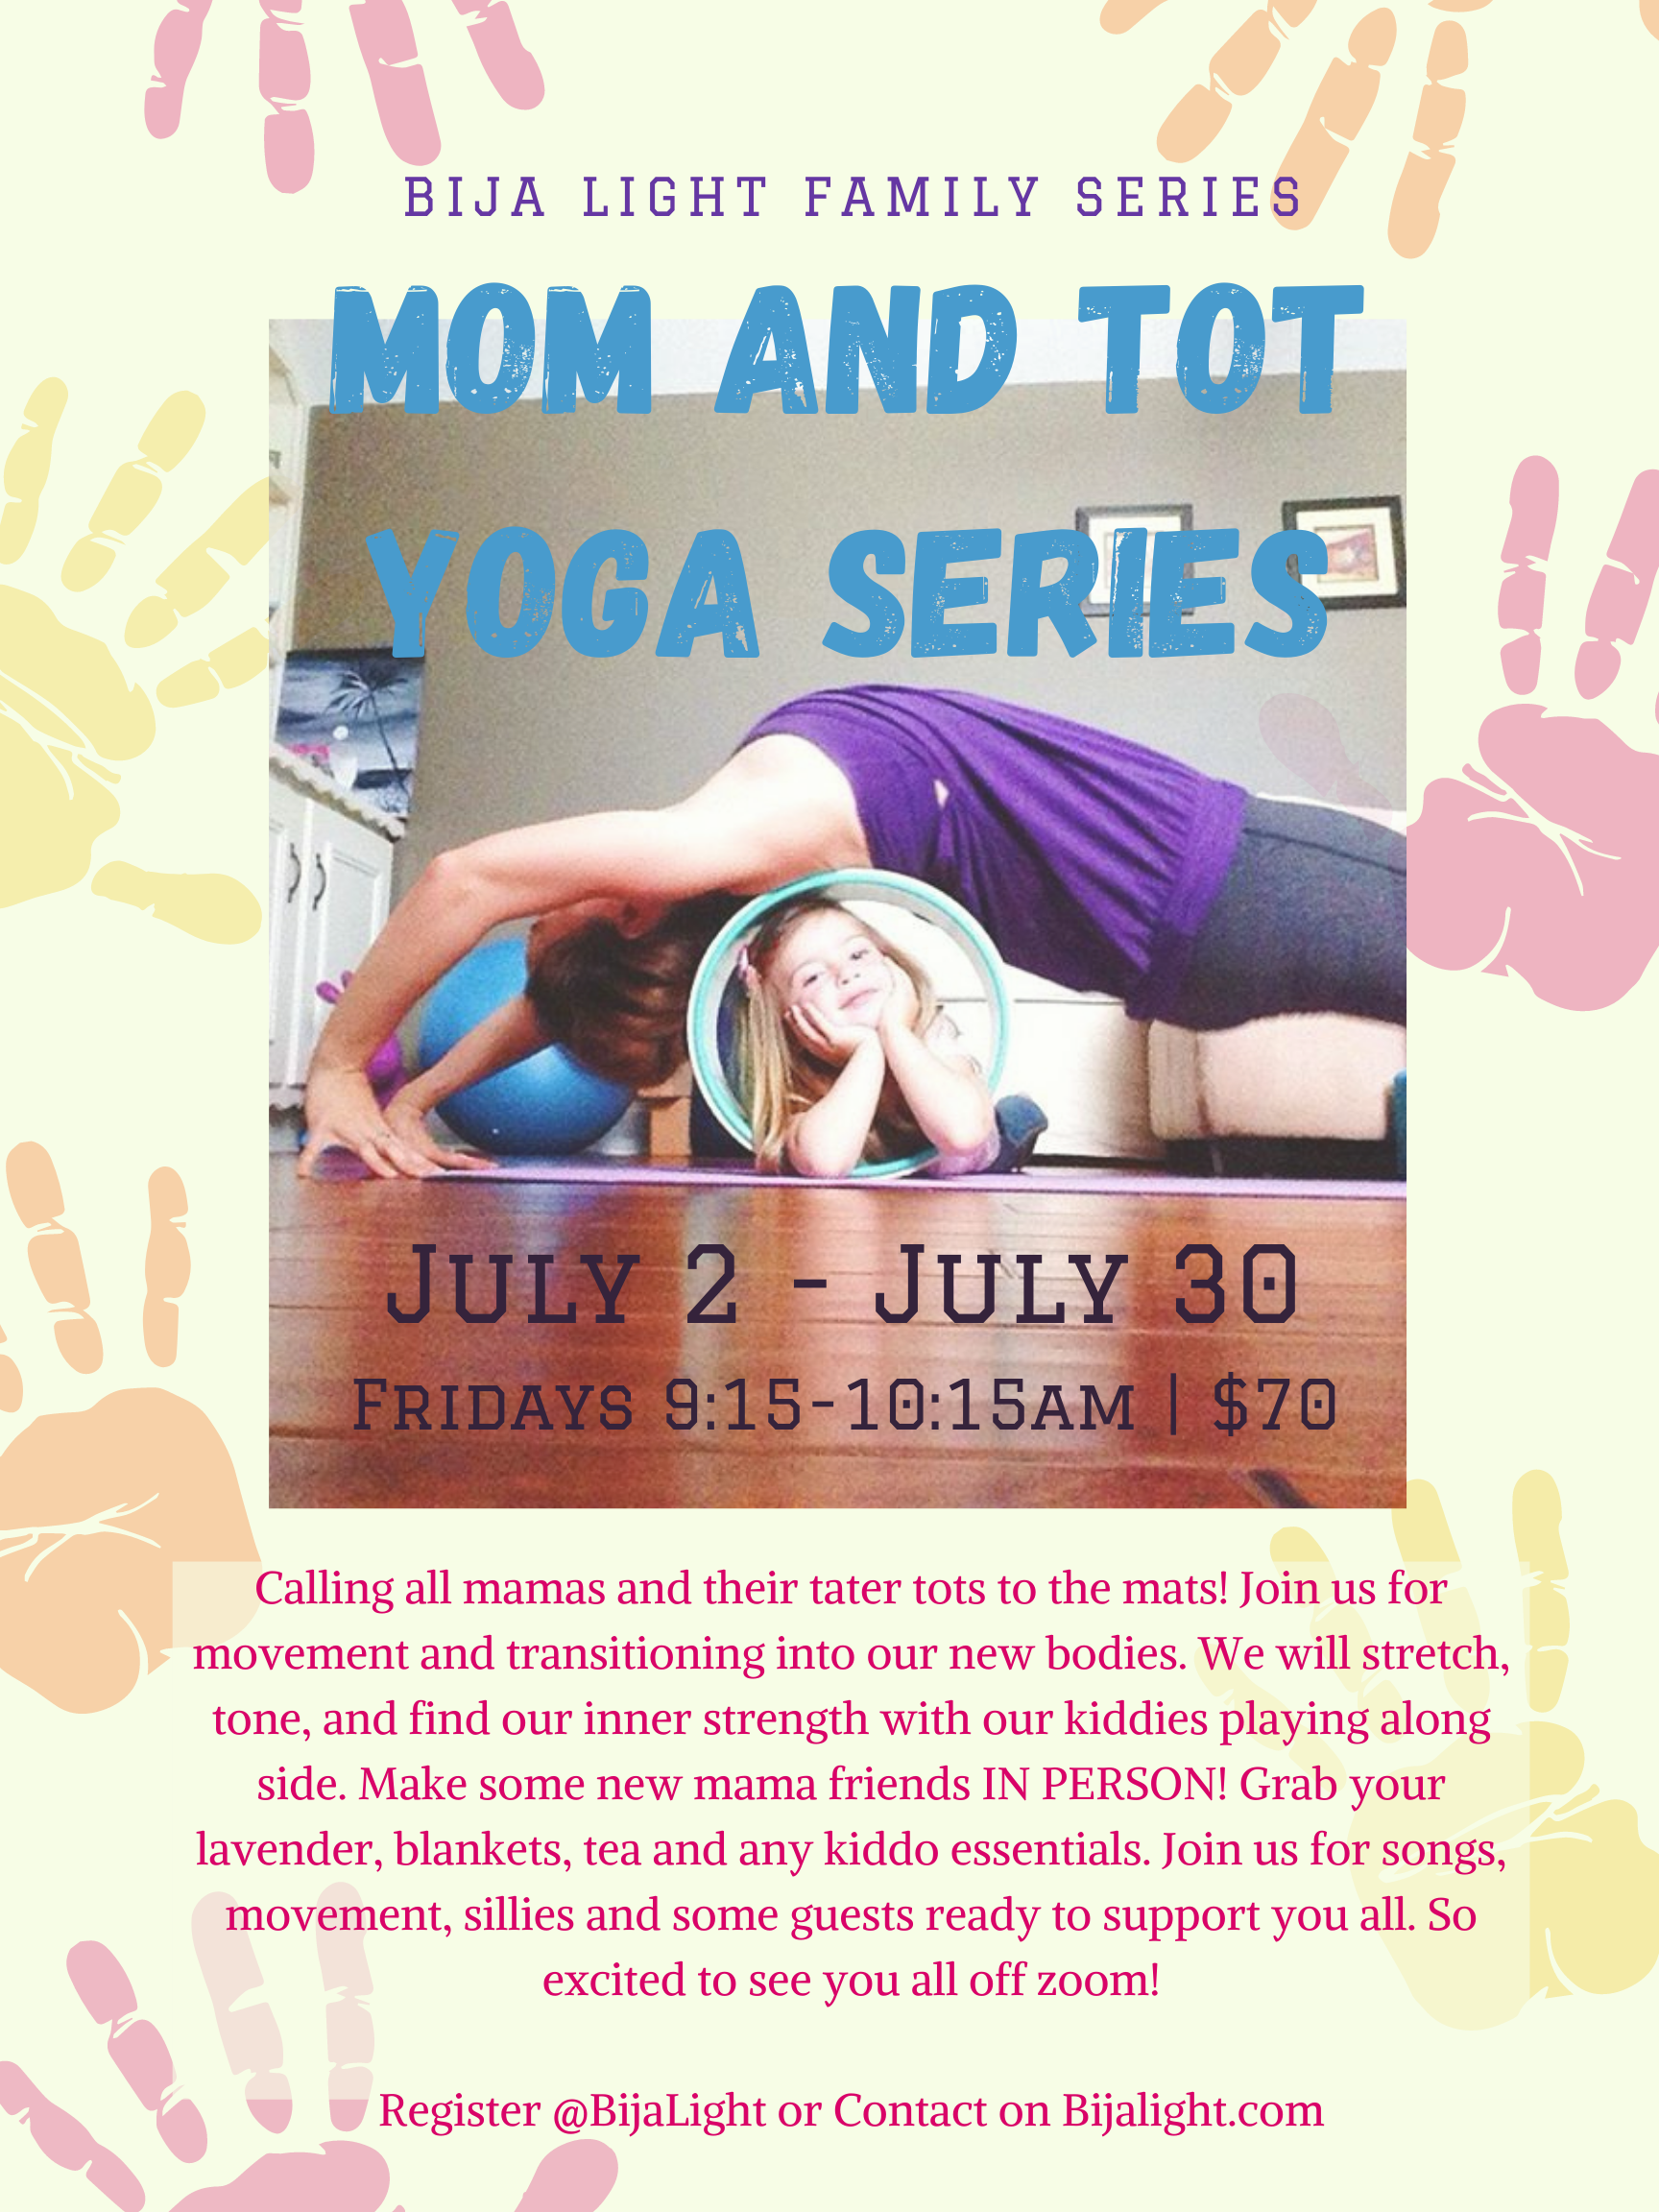 Mom and Tot Yoga Series - July 21